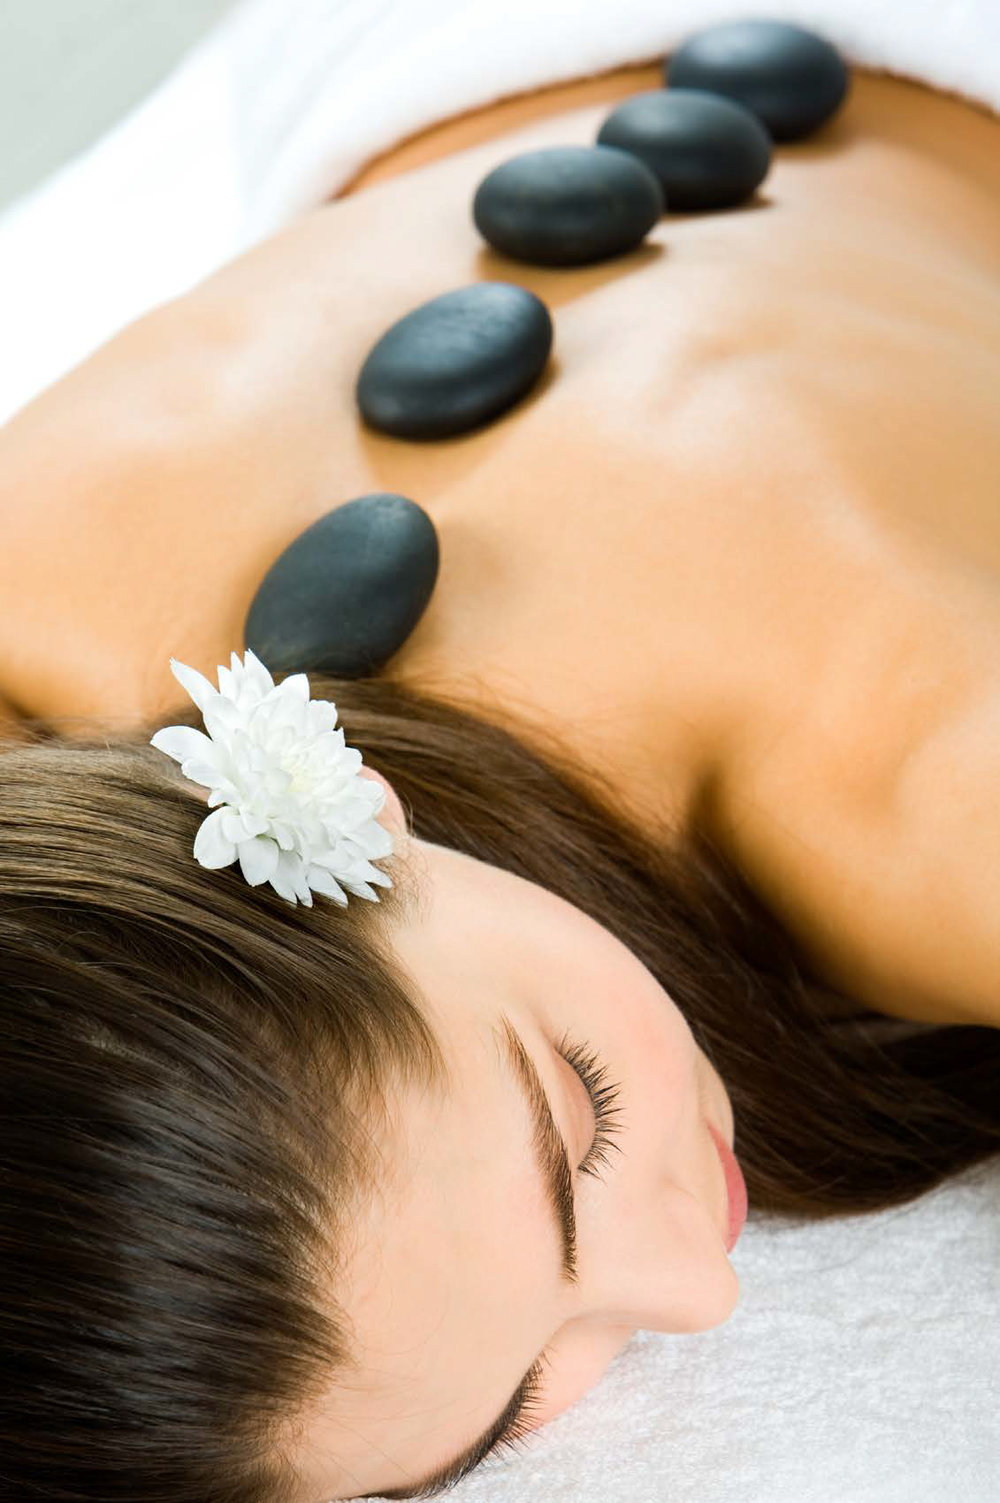 MASSAGES - GÁNGA: LYMPHATIC DRAINAGEStimulates lymphatic circulation to remove toxins from the body.LOTUS FLOWER: HOT STONESHeated stones are placed on the body's energy points to provide energy, oxygenate the skin, revitalize and relax, and stimulate circulation.ANANDA: CHOCOLATEChocolate has antioxidant properties, increases serotonin levels and invigorates the body.DHYANA: ANTIOXIDANT WITH WINEAntioxidants slow aging by improving circulation to generate firmer, smoother and hydrated skin.ASANA: THERAPEUTICCorrective and preventive therapy to reverse the effects of stress, tension, and pain over time; increases vitality and improves functioning of the immune system.SENSORIA MASSAGE: 4 HANDSMassage performed simultaneously by two masseurs to make you feel totally relaxed.